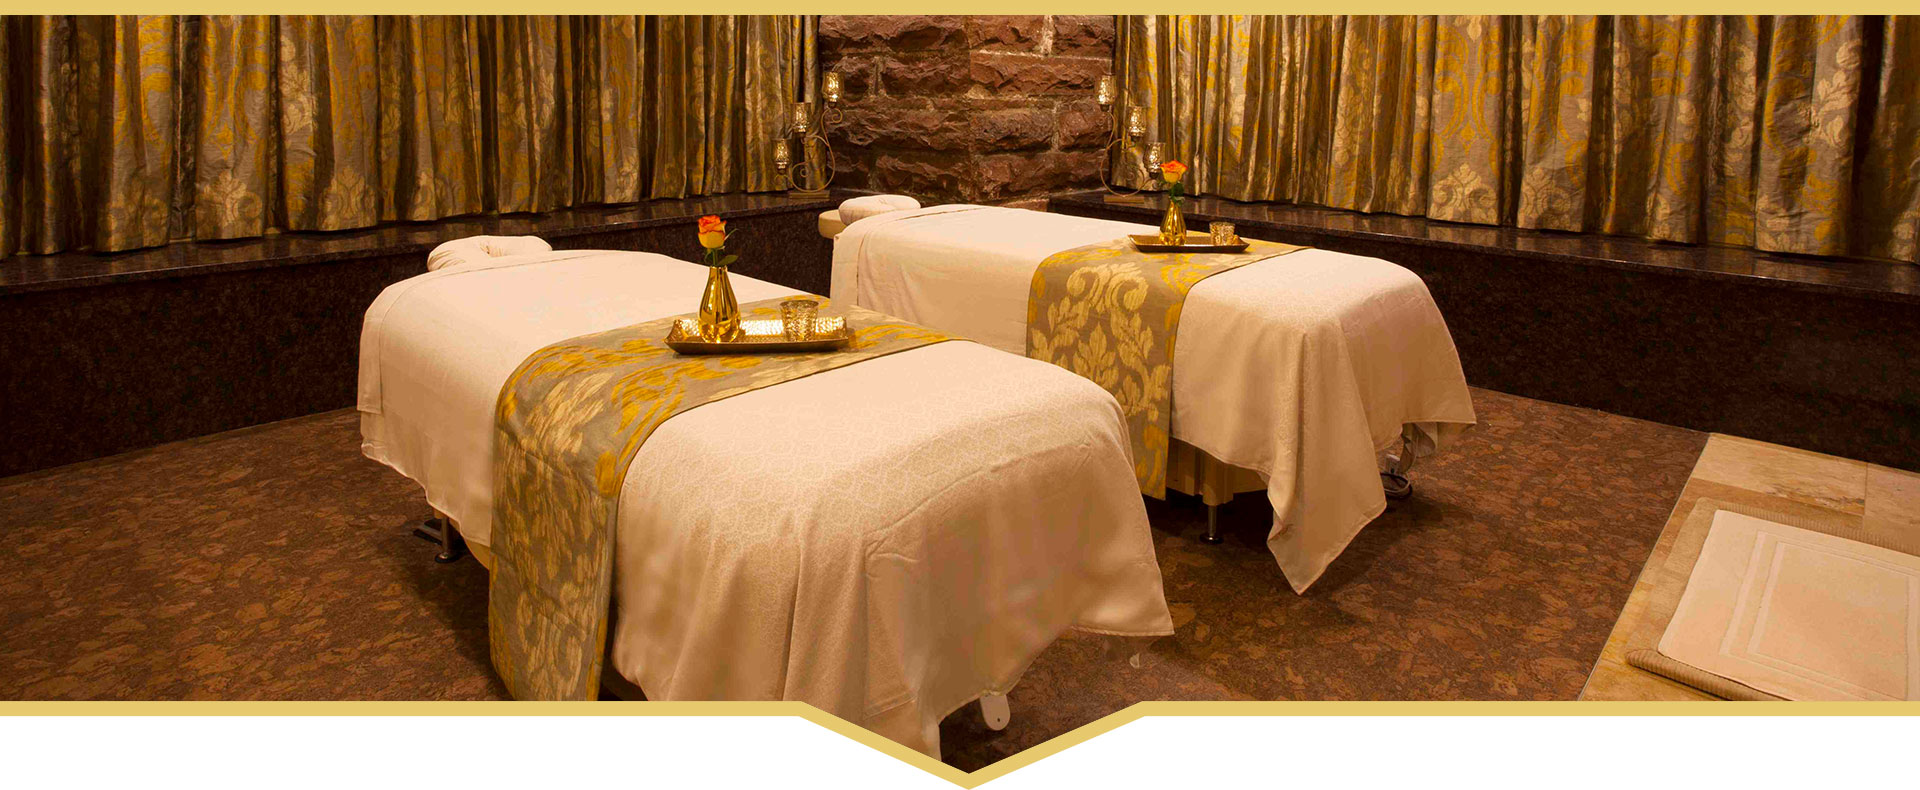 20% off services at MX Spa